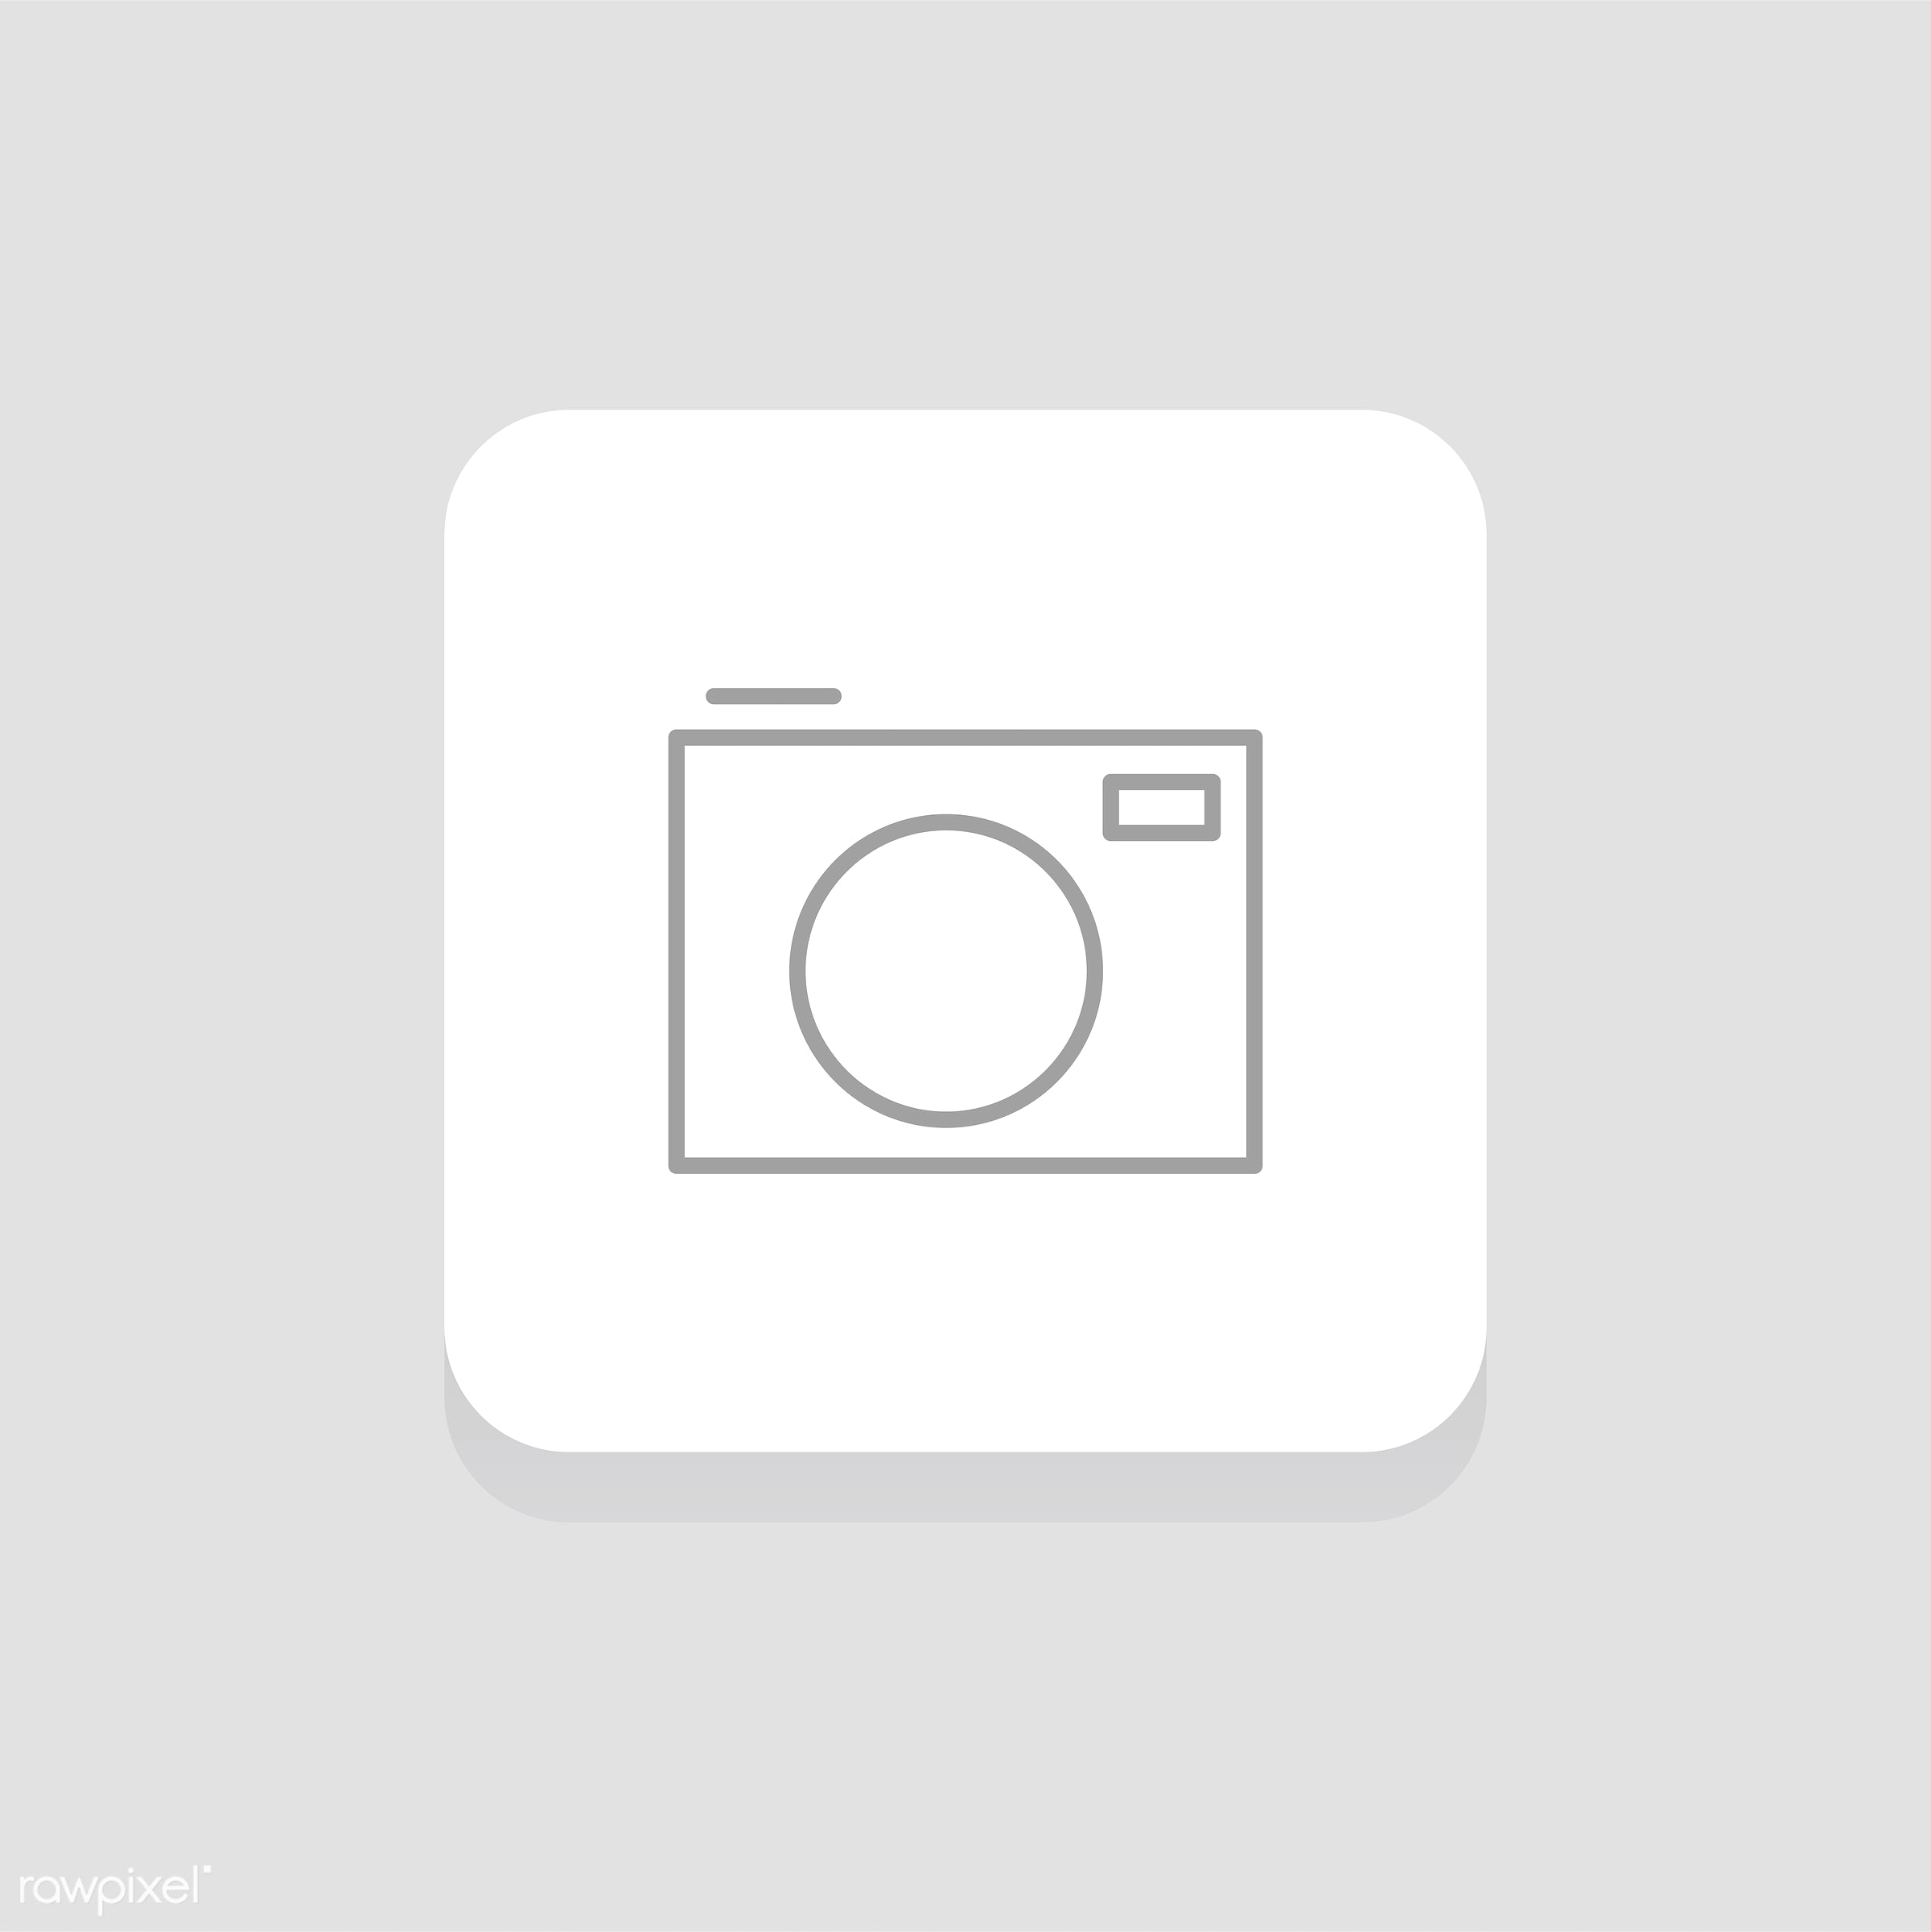 Vector of camera icon - design, flat, graphic, icon, illustration, isolated, layout, style, symbol, vector, web, website,...